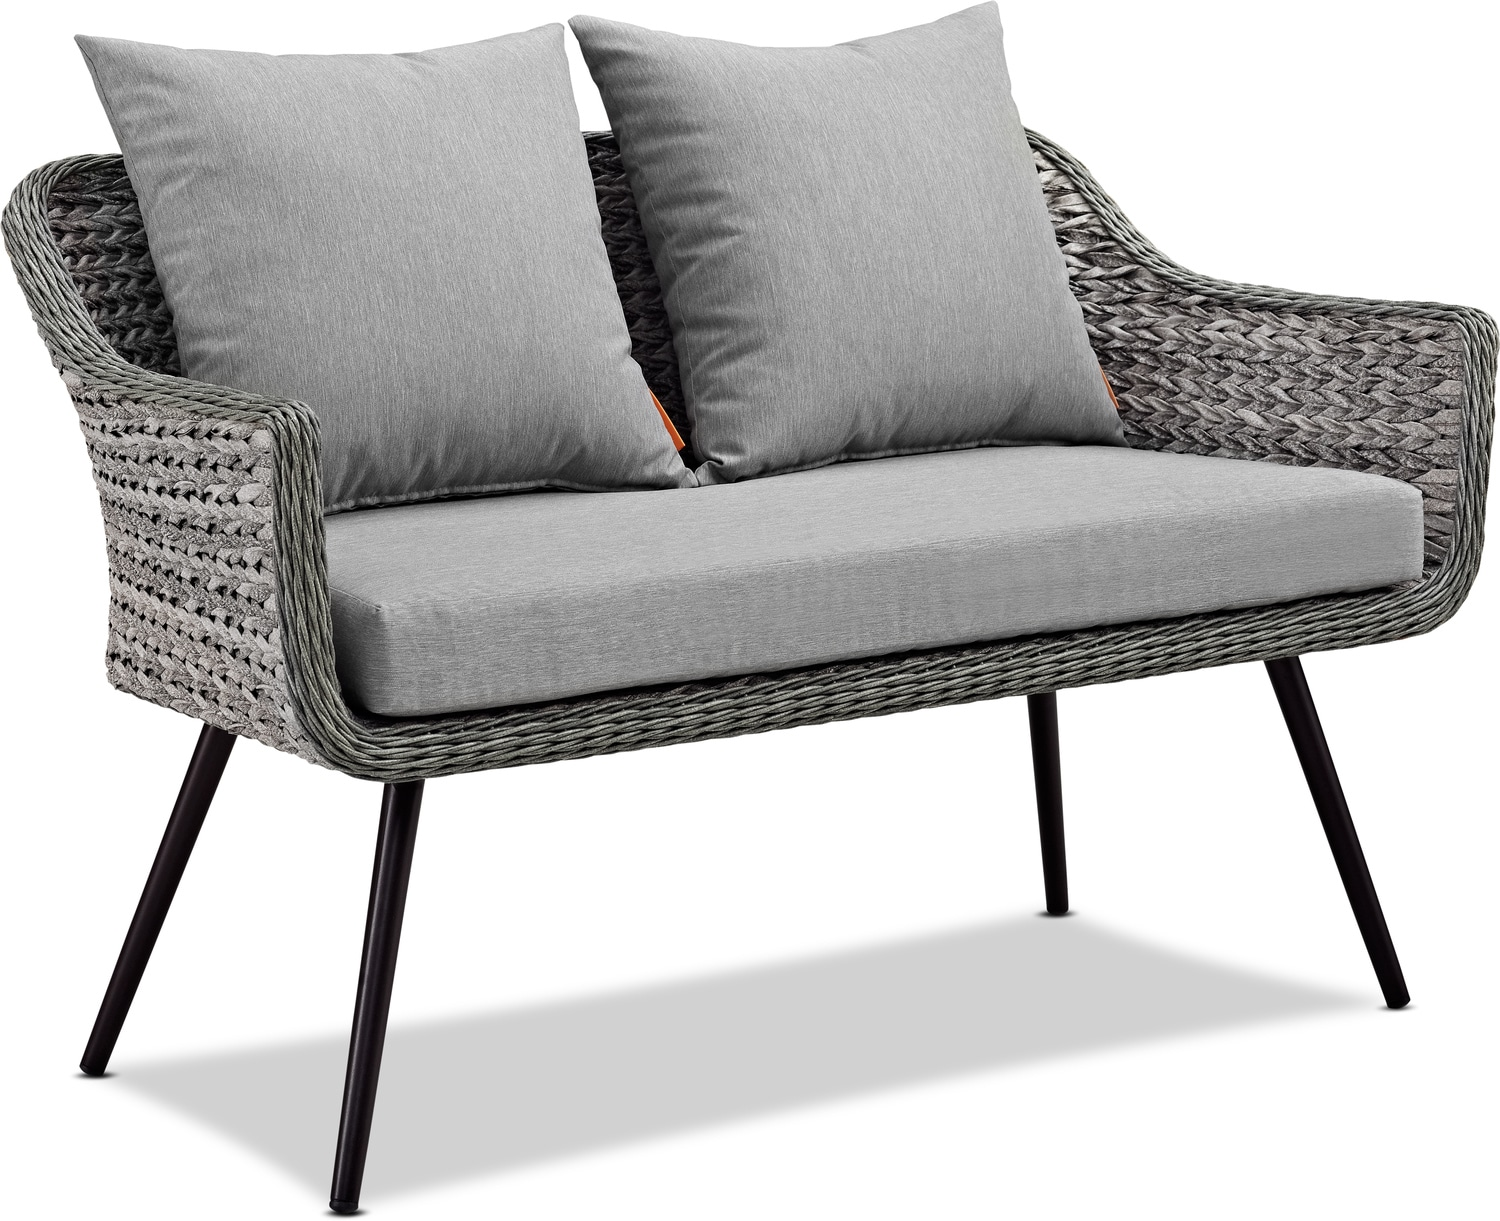 Outdoor Furniture - Palm Outdoor Loveseat - Gray